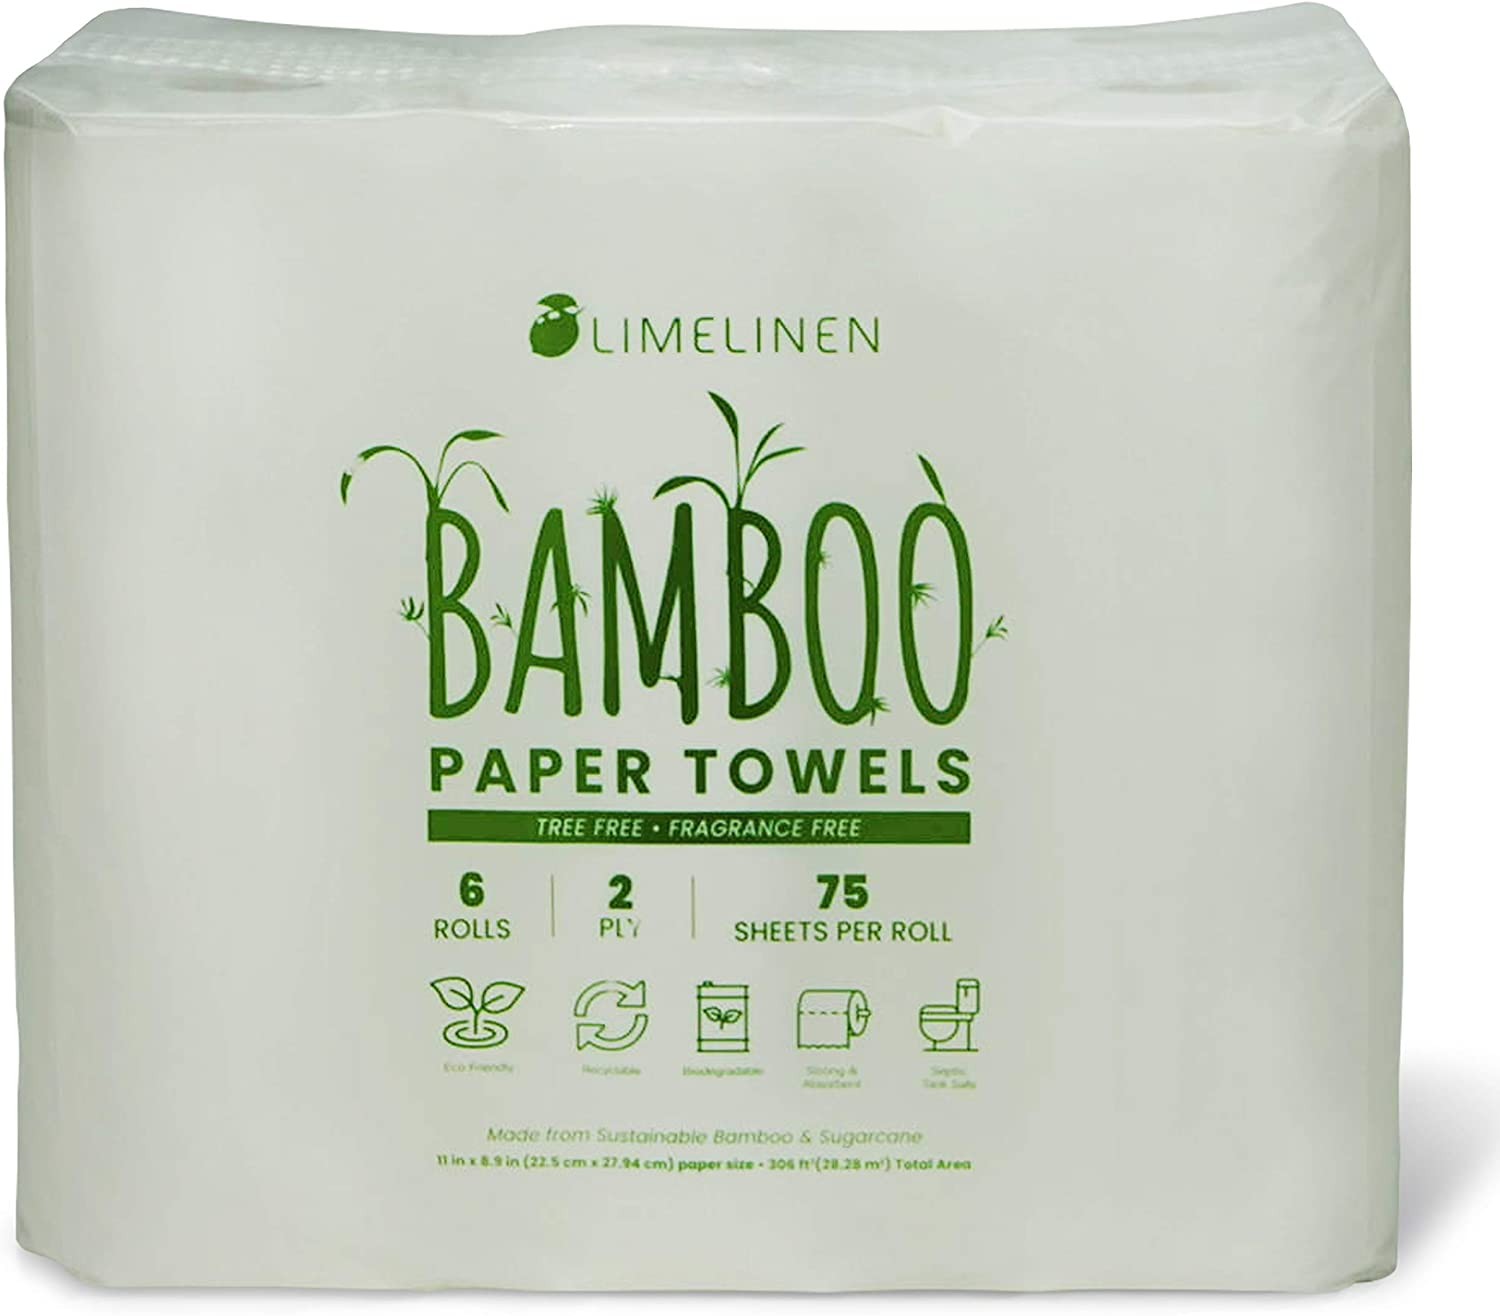 LIMELINEN Bamboo Tulsa Mall 6 Rolls Paper Eco Biodegradable Towels Friend Easy-to-use